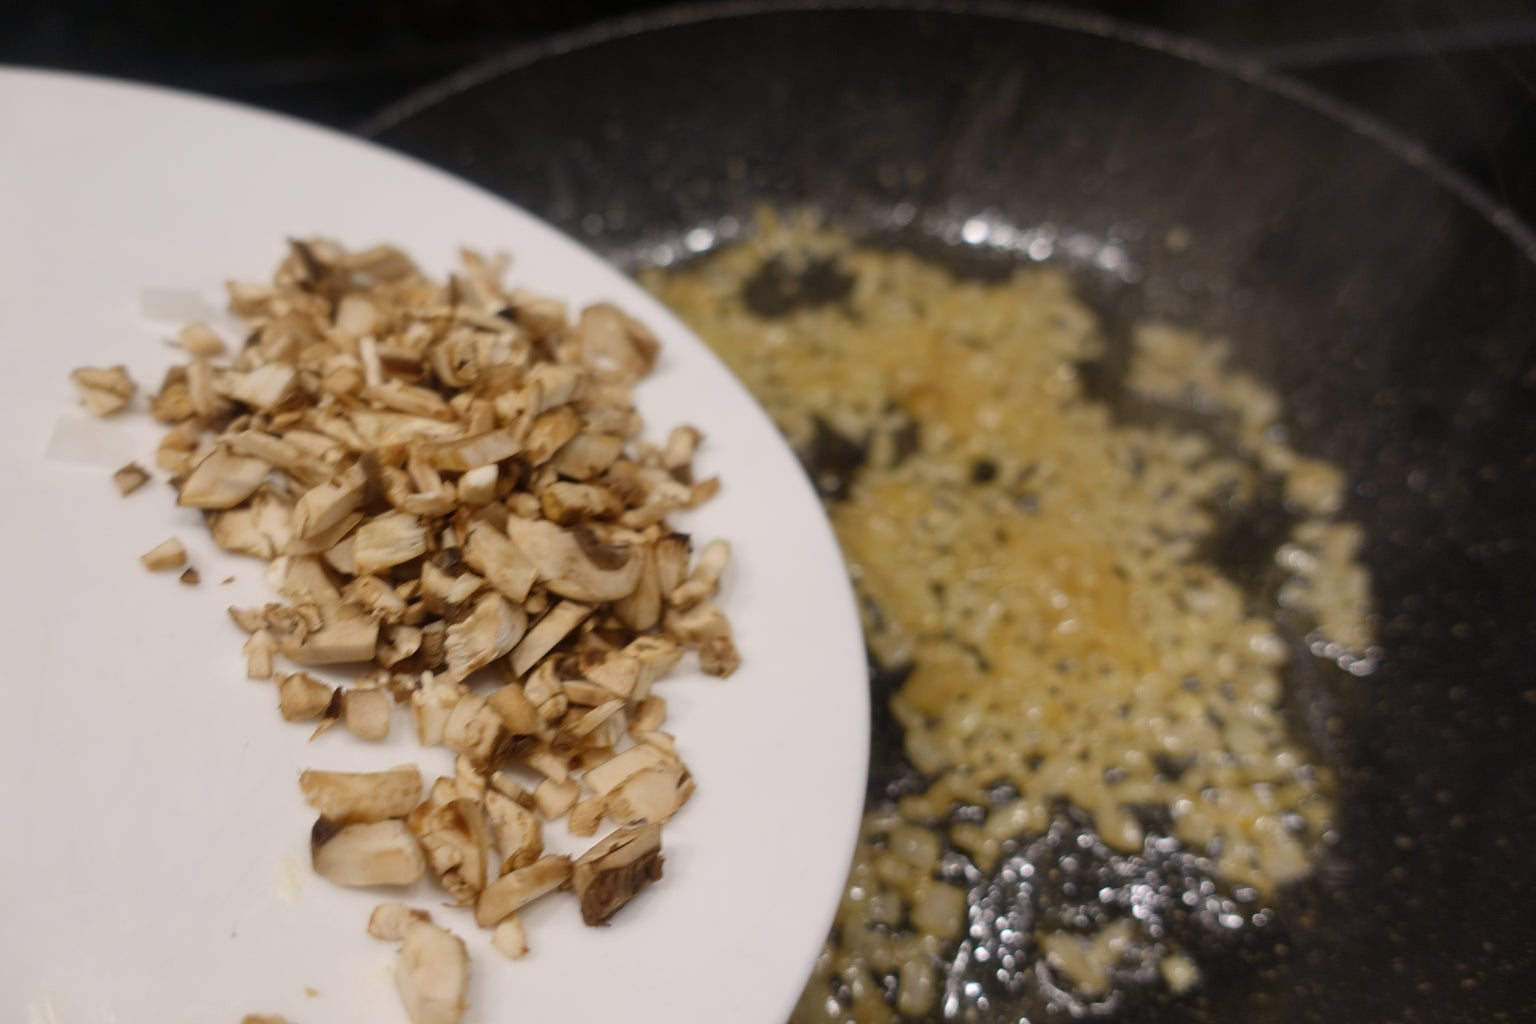 Sautee the Onions and Mushrooms